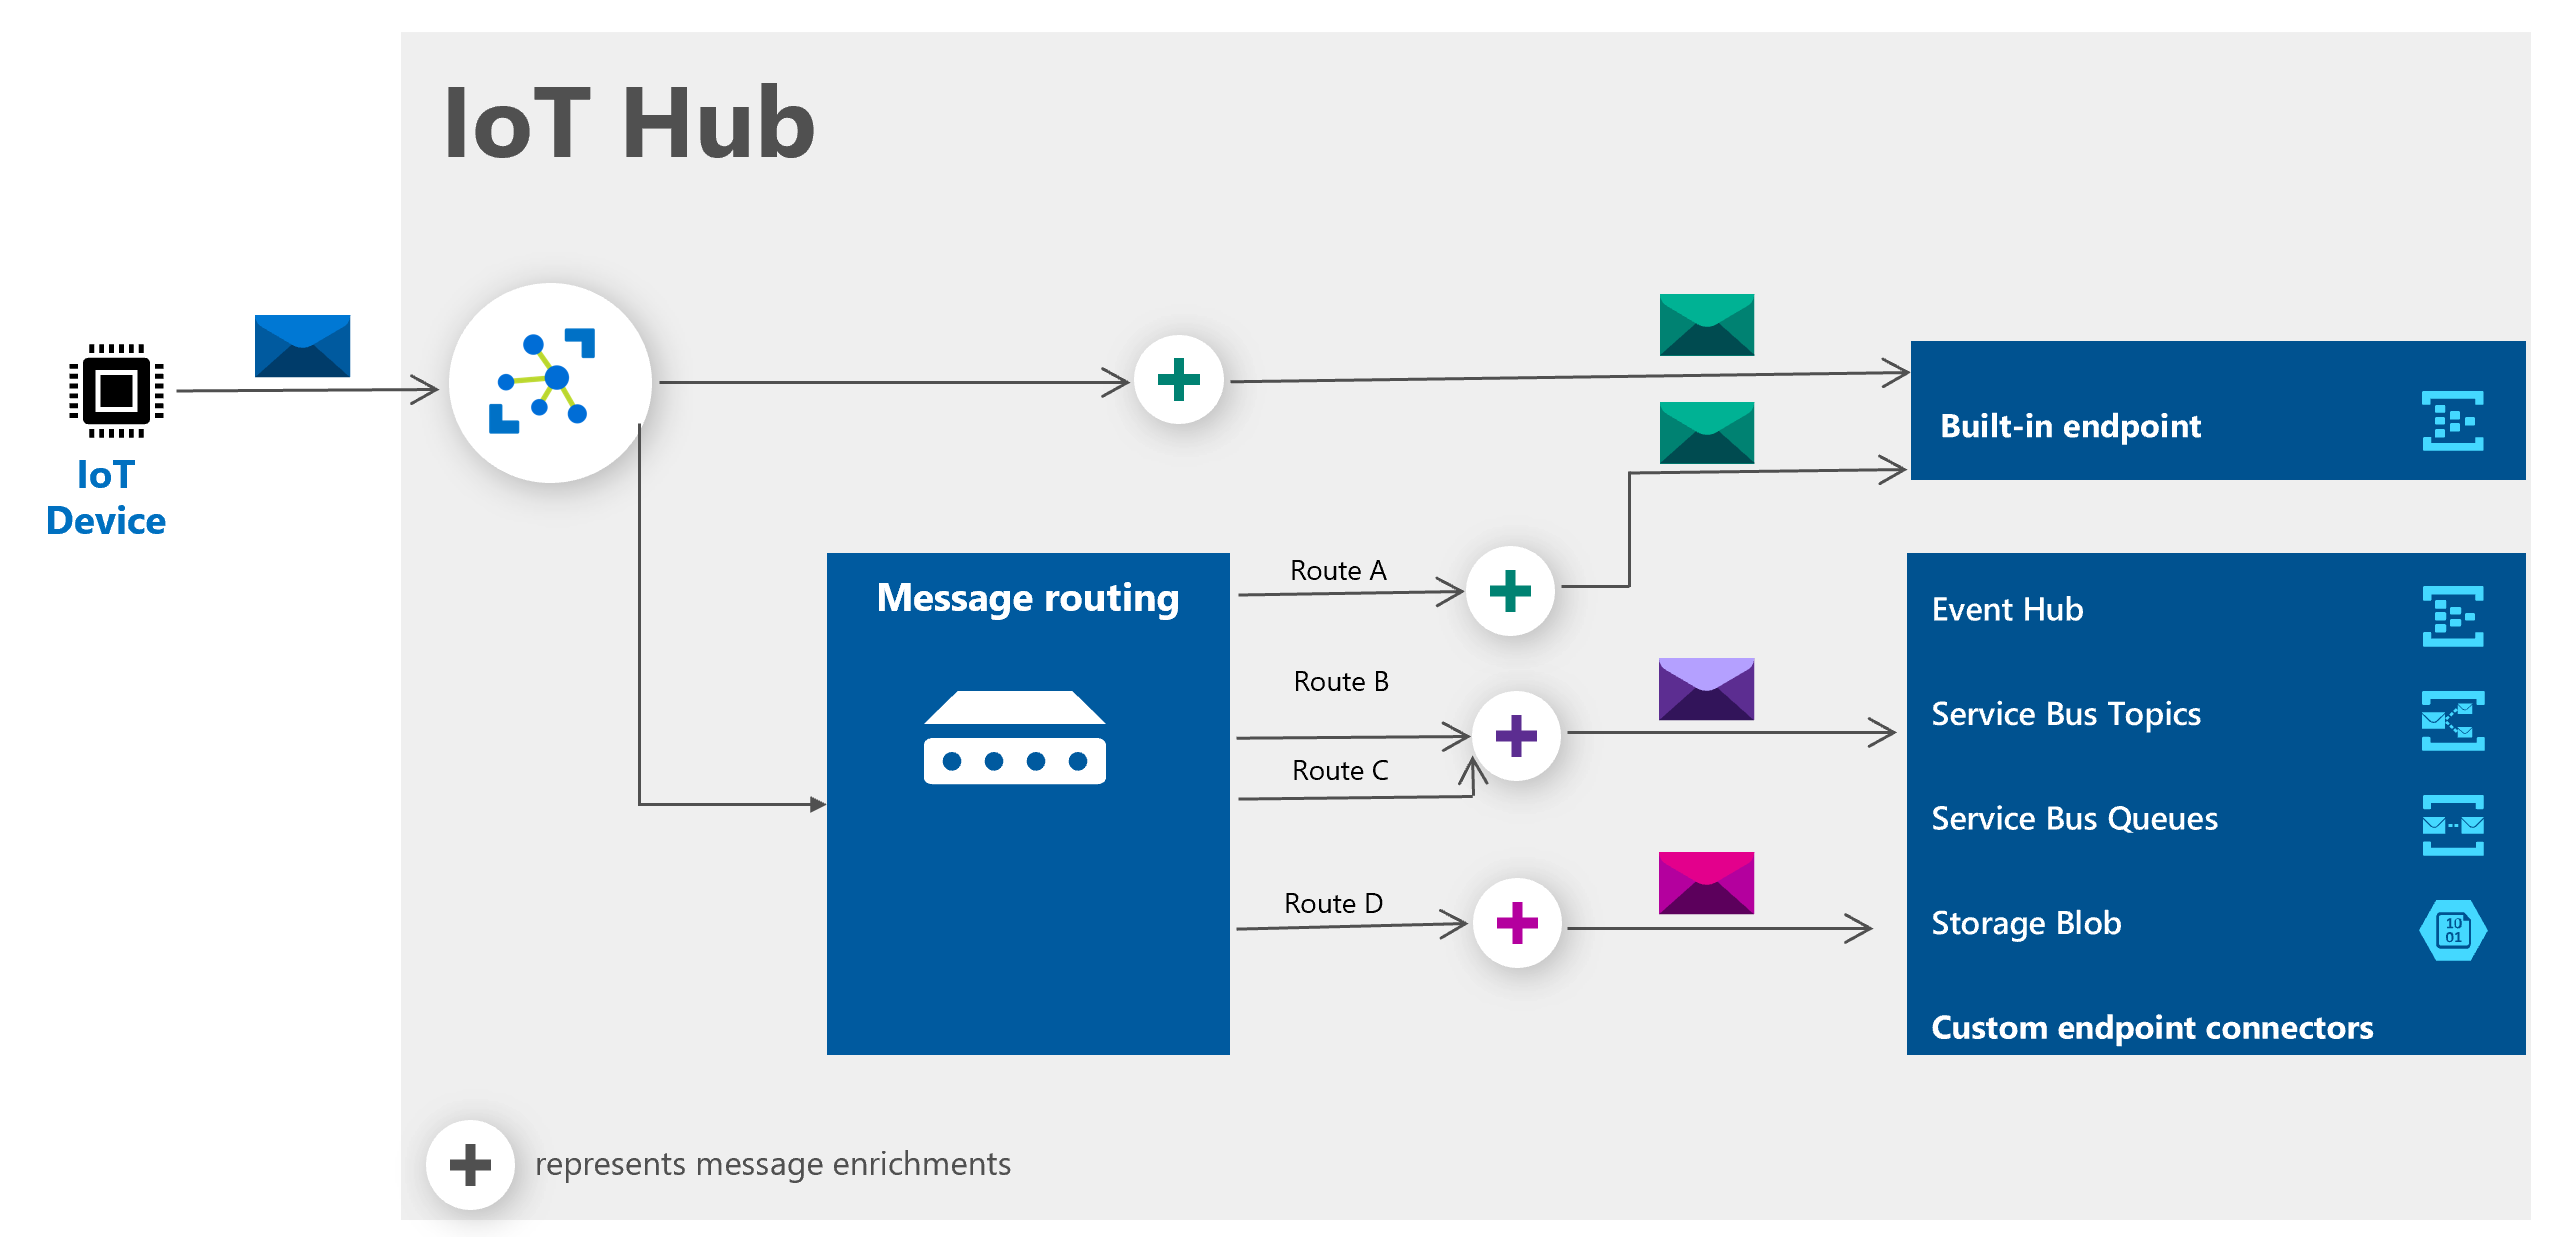 Diagram of IoT Hub workflow and message routing